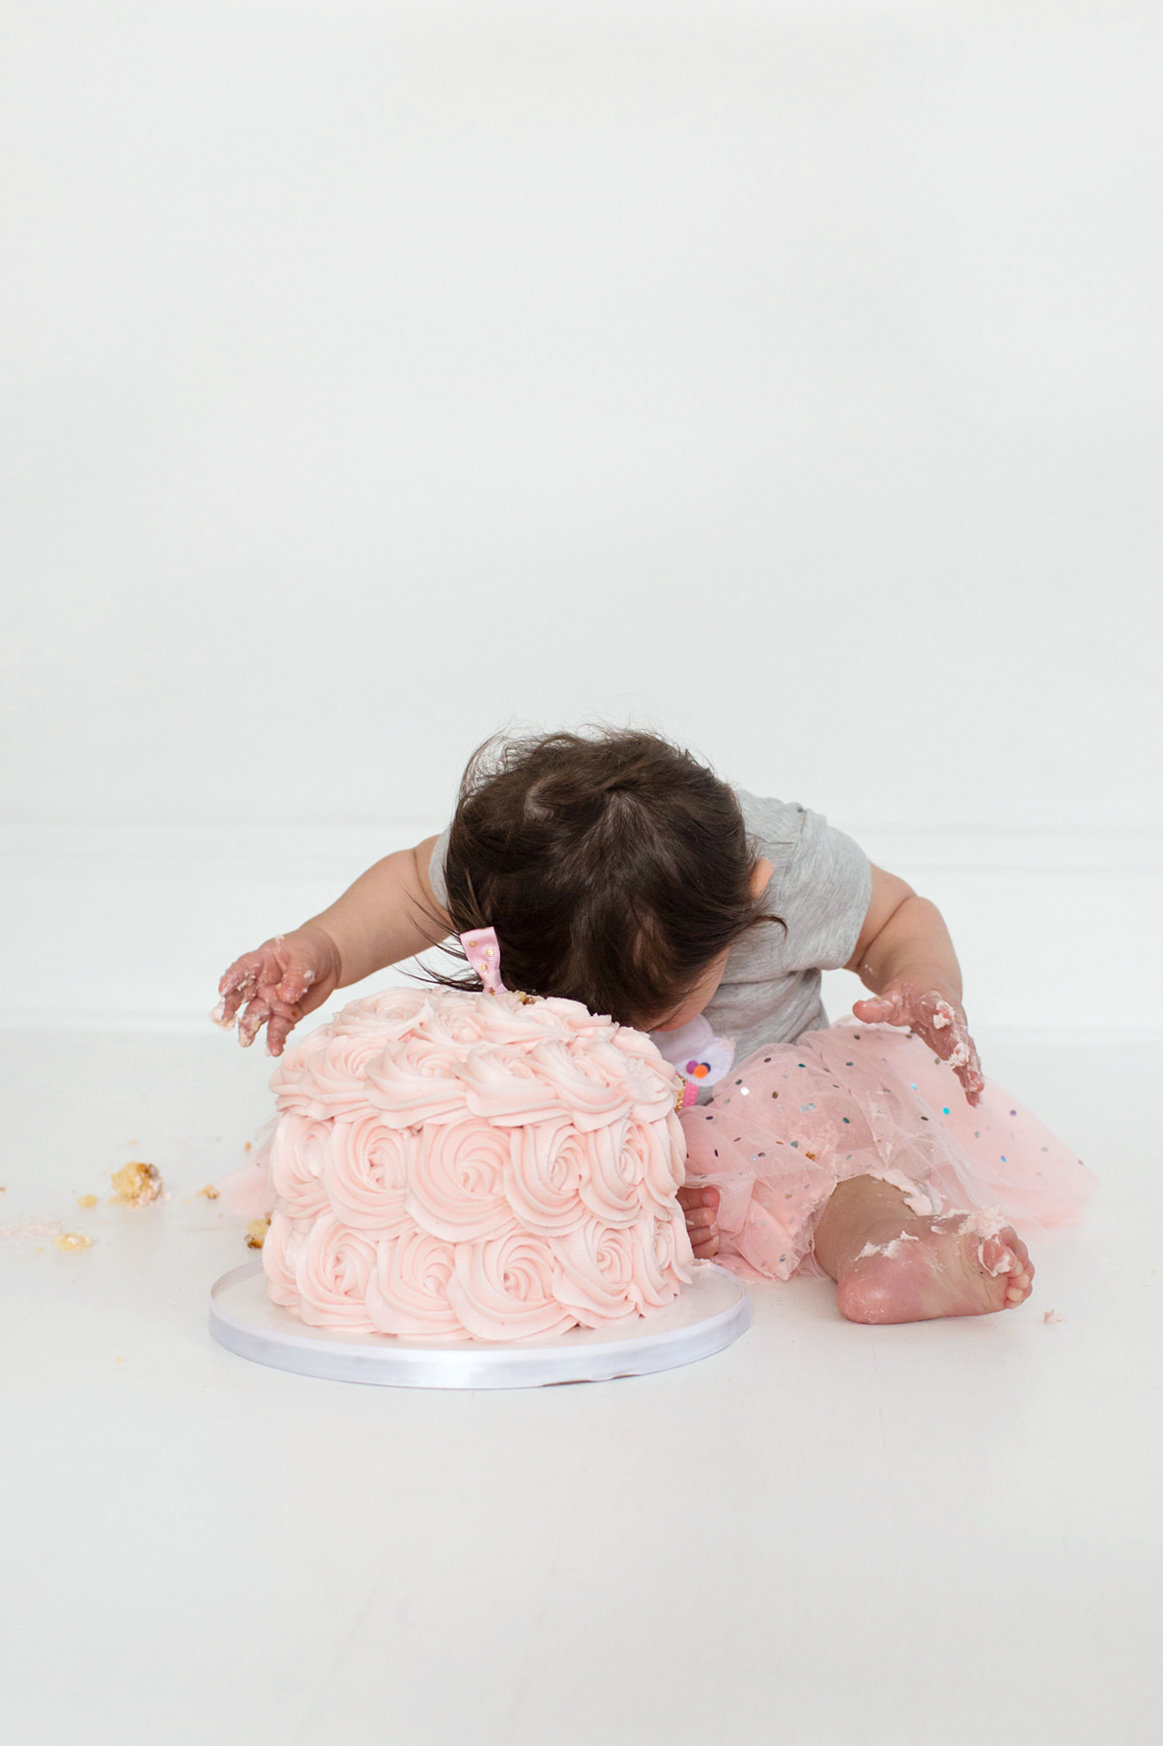 St-Louis-Studio-Child-Photographer-Cake-Smash-1-year-old-Sheth_60